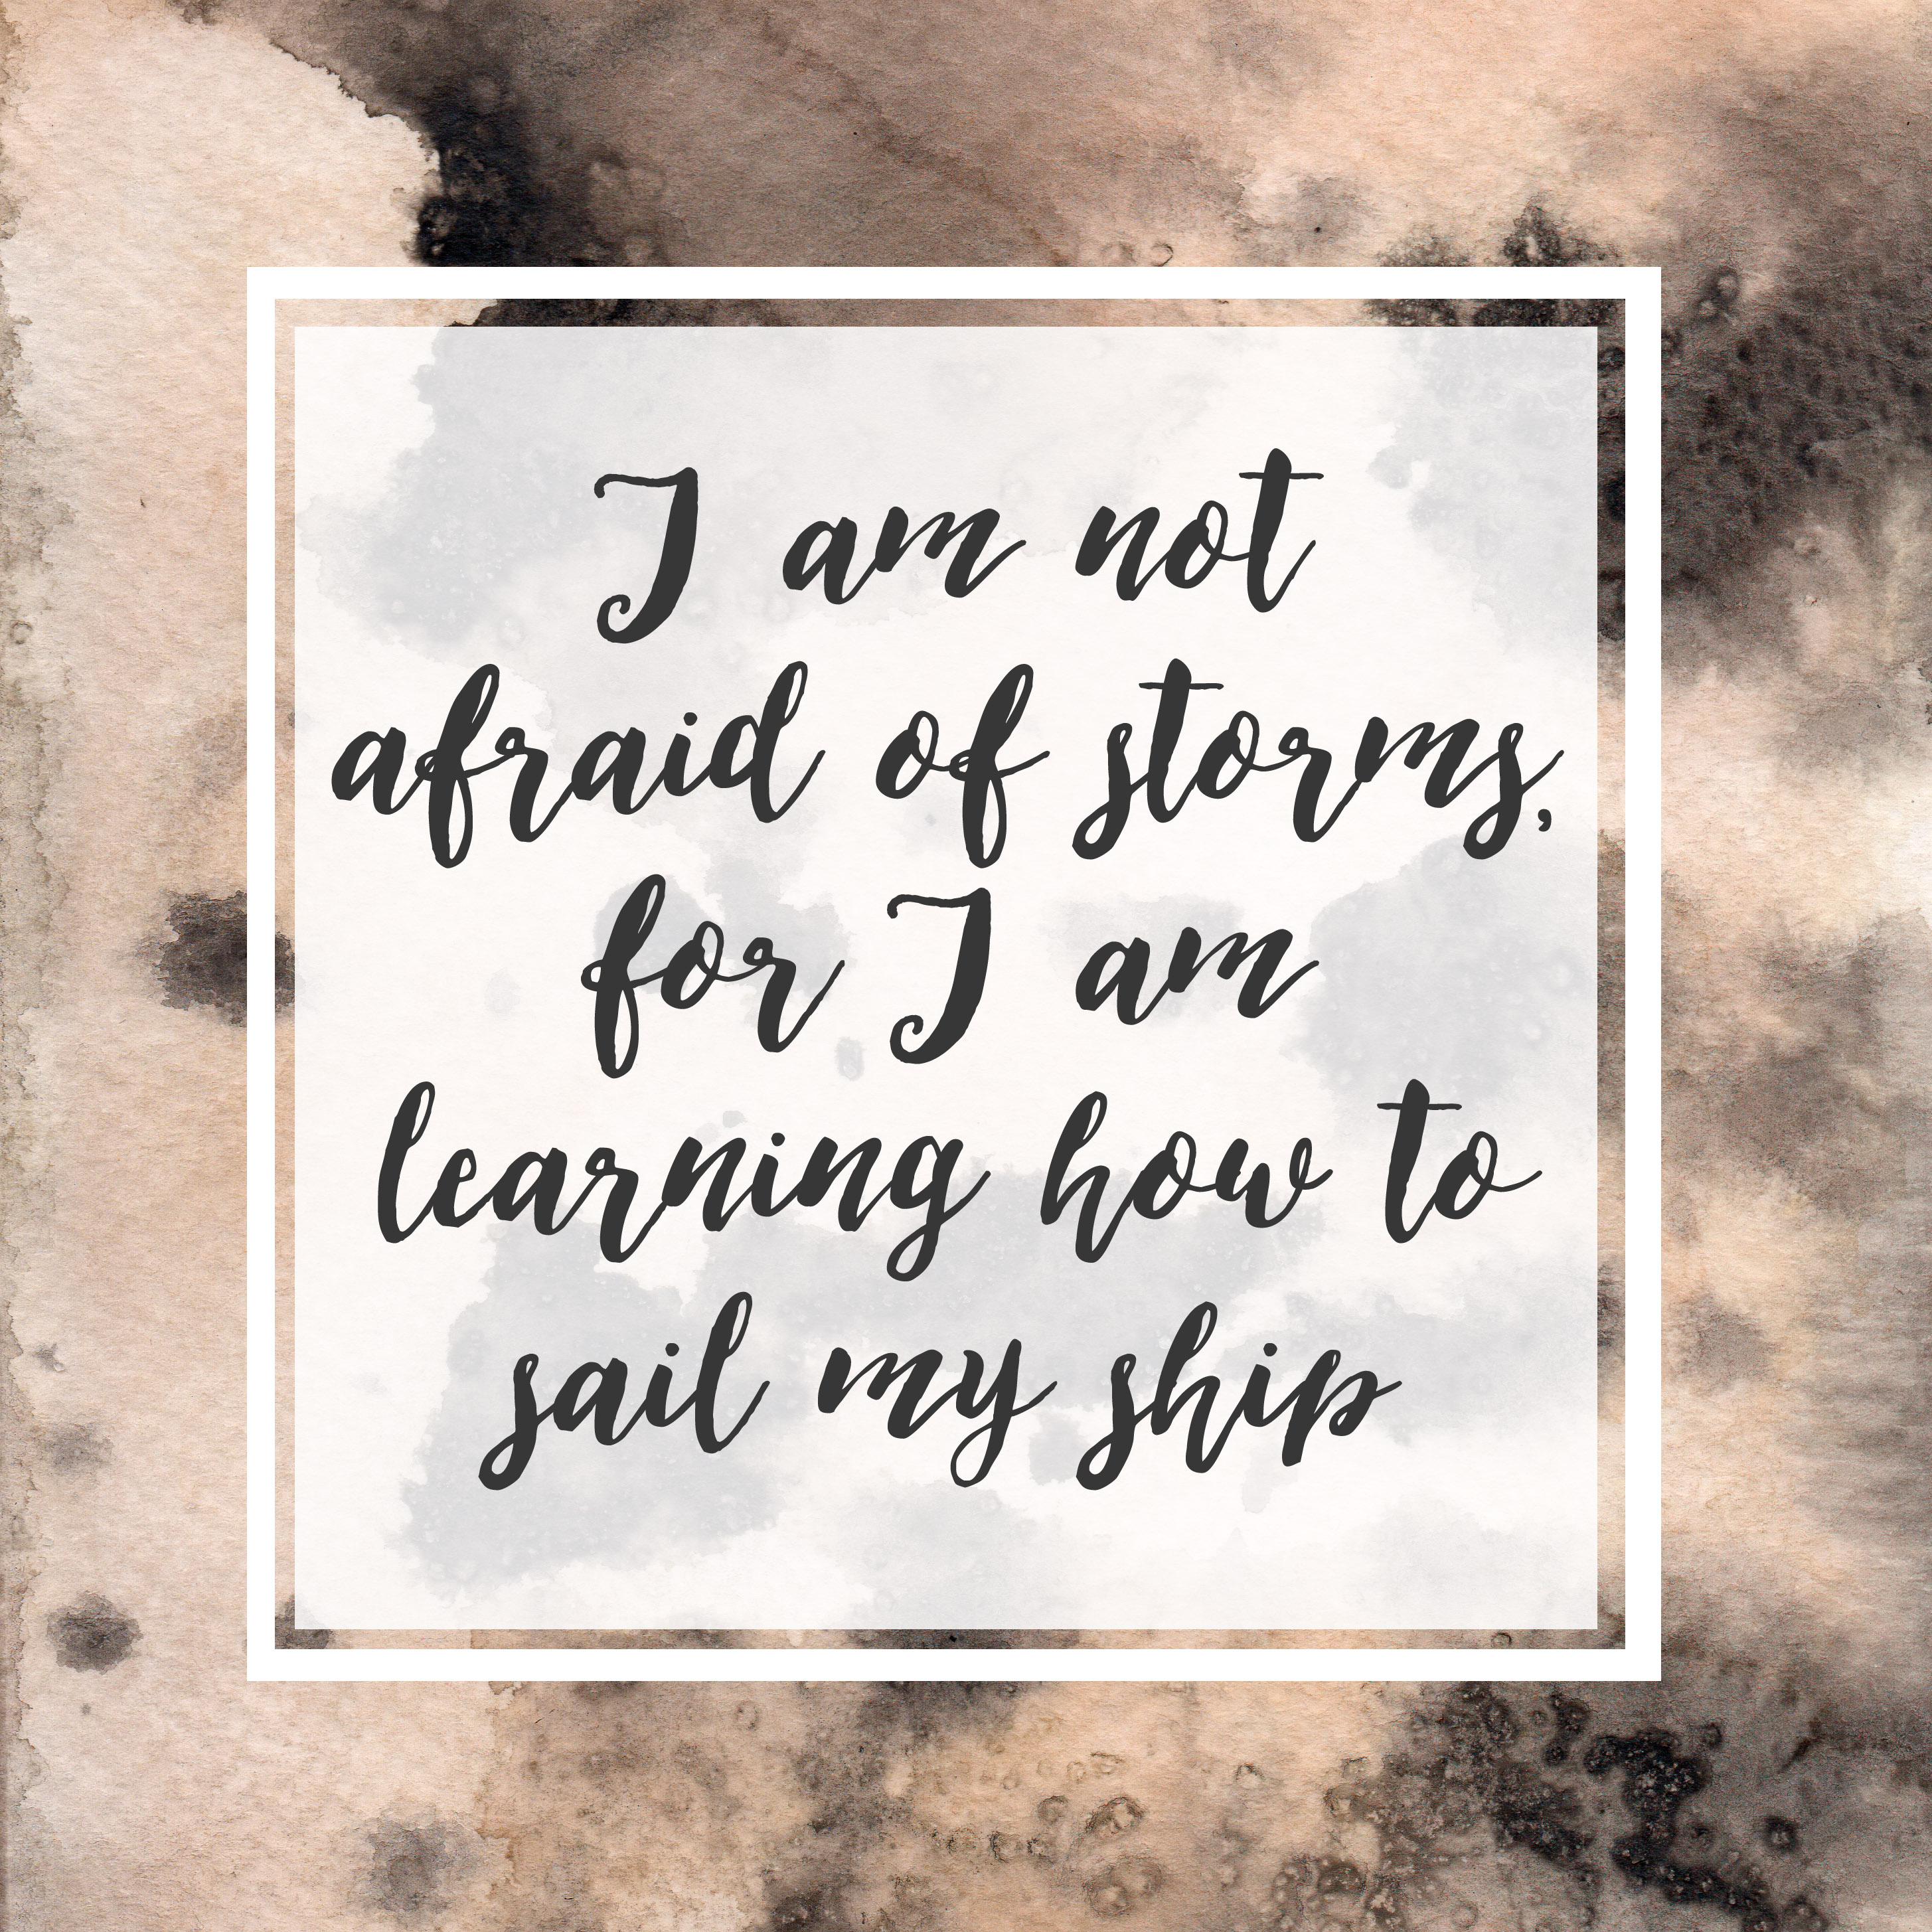 I am not afraid of storms, for I am learning how to sail my ship - amy march little women quote copy